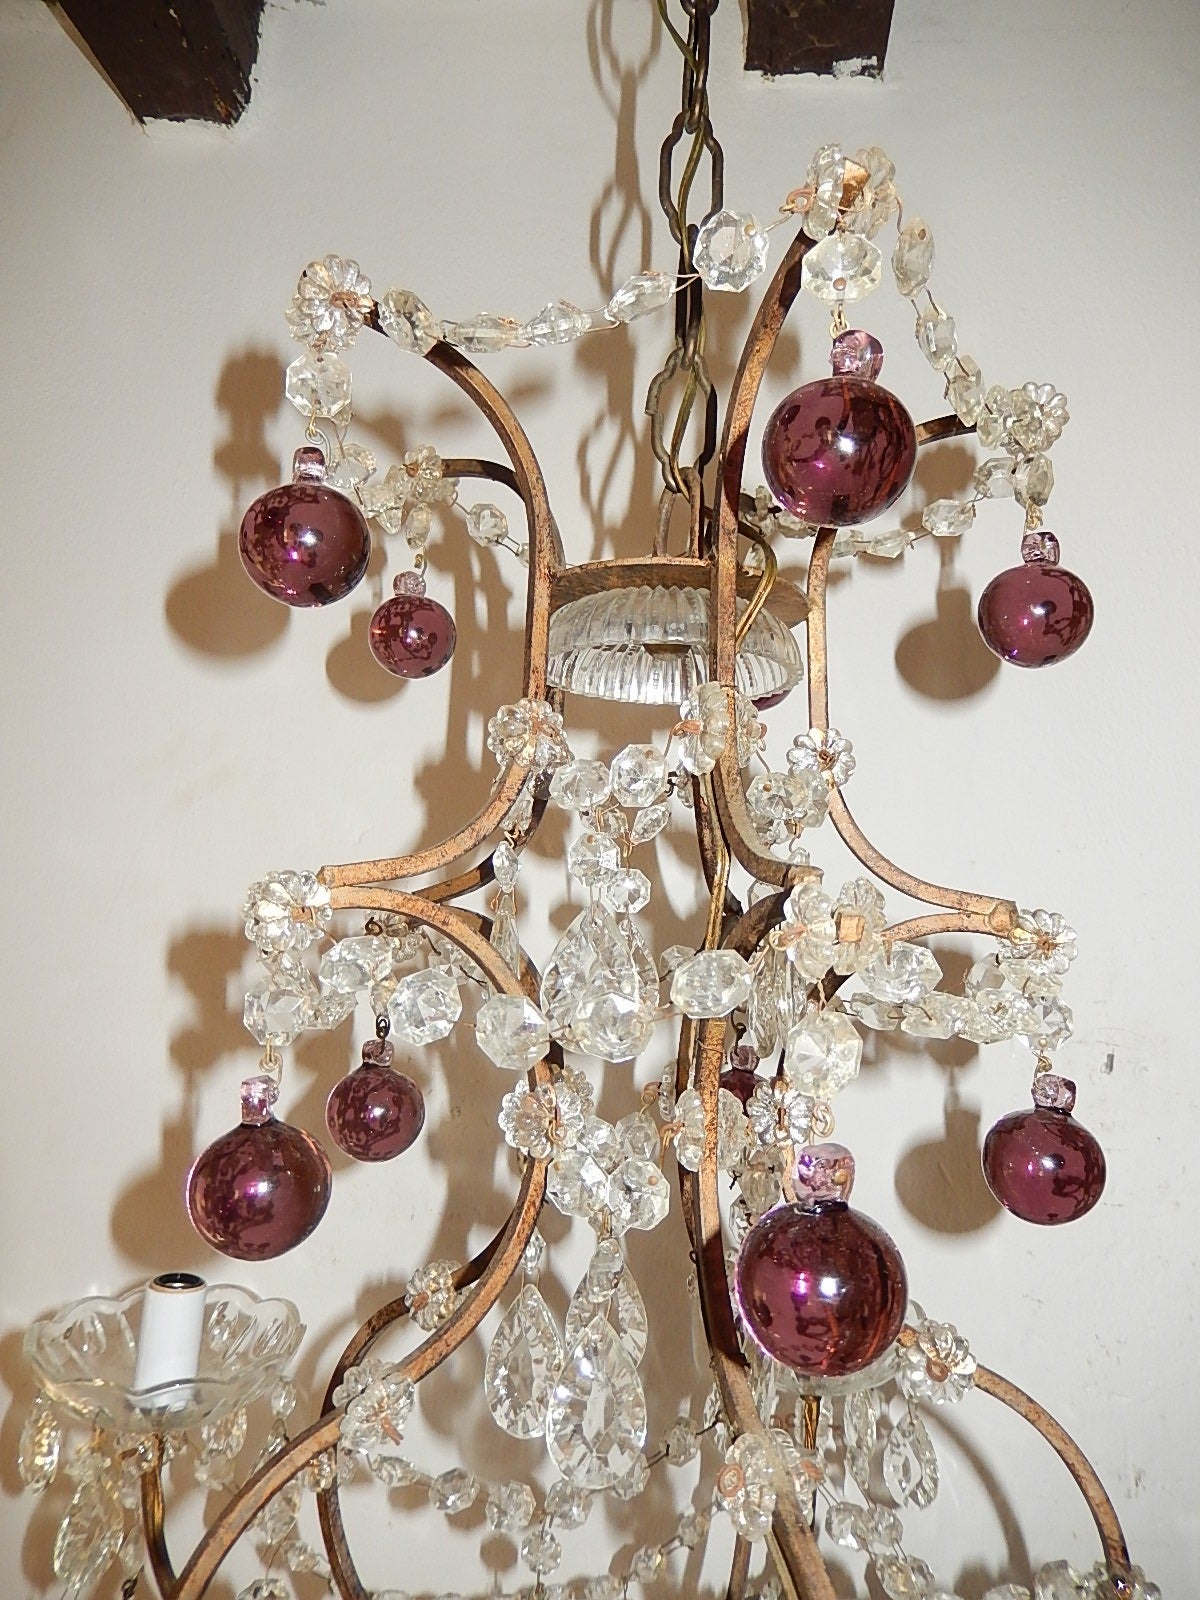 Early 20th Century French Amethyst Balls Clear Prisms Chandelier For Sale